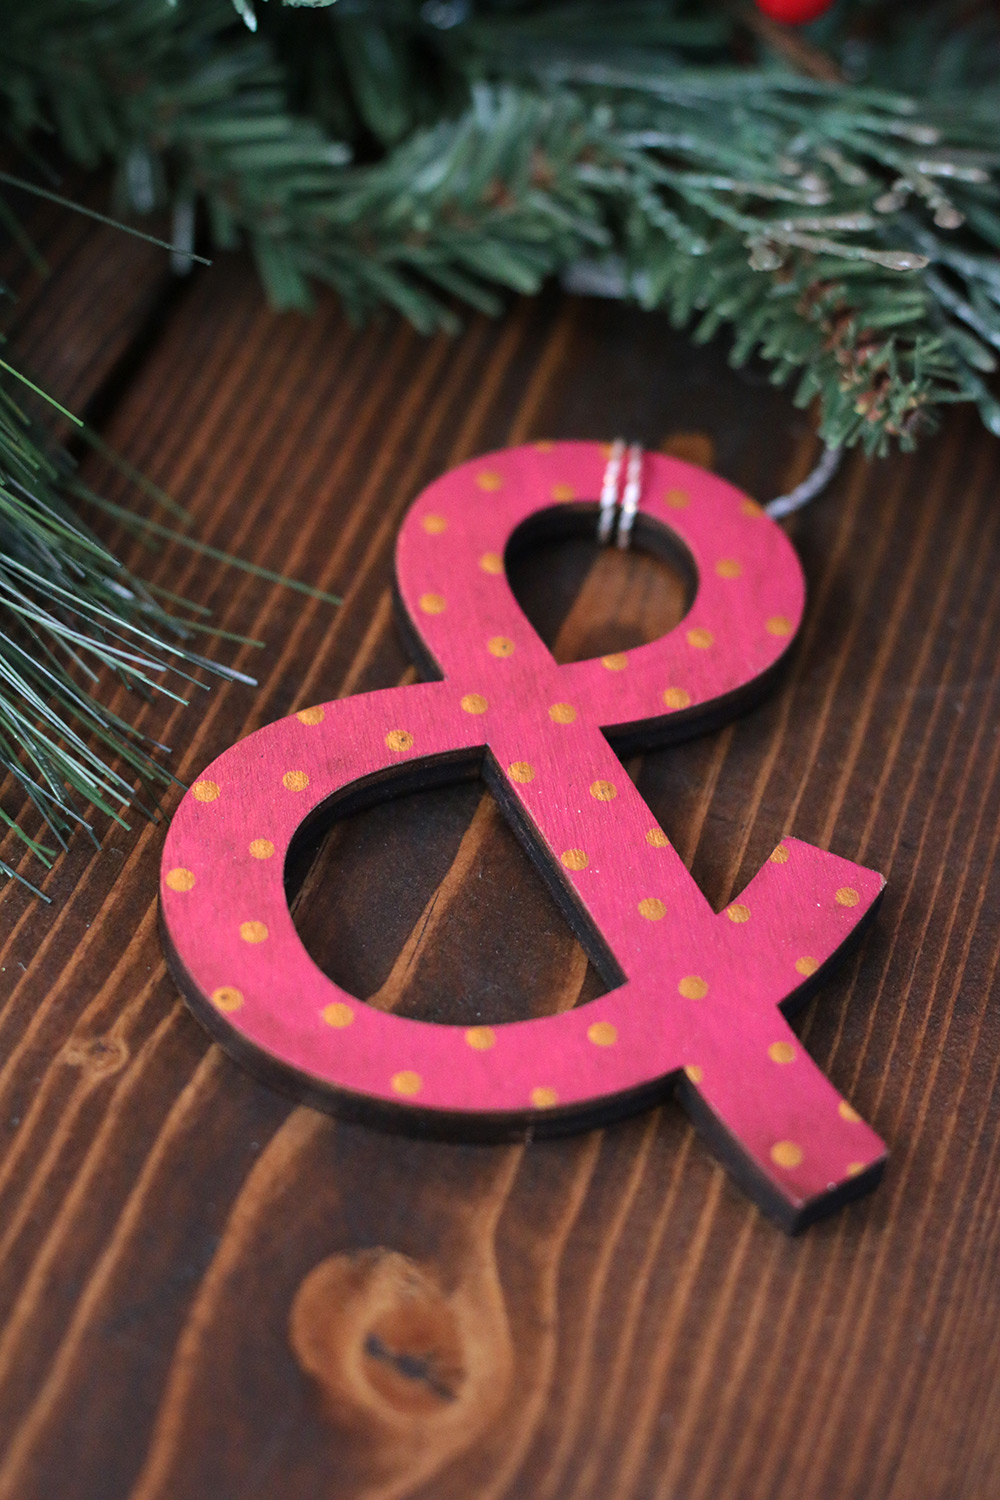 Ampersand Ornament, handmade by Our Backyard Studio - The Weed Patch